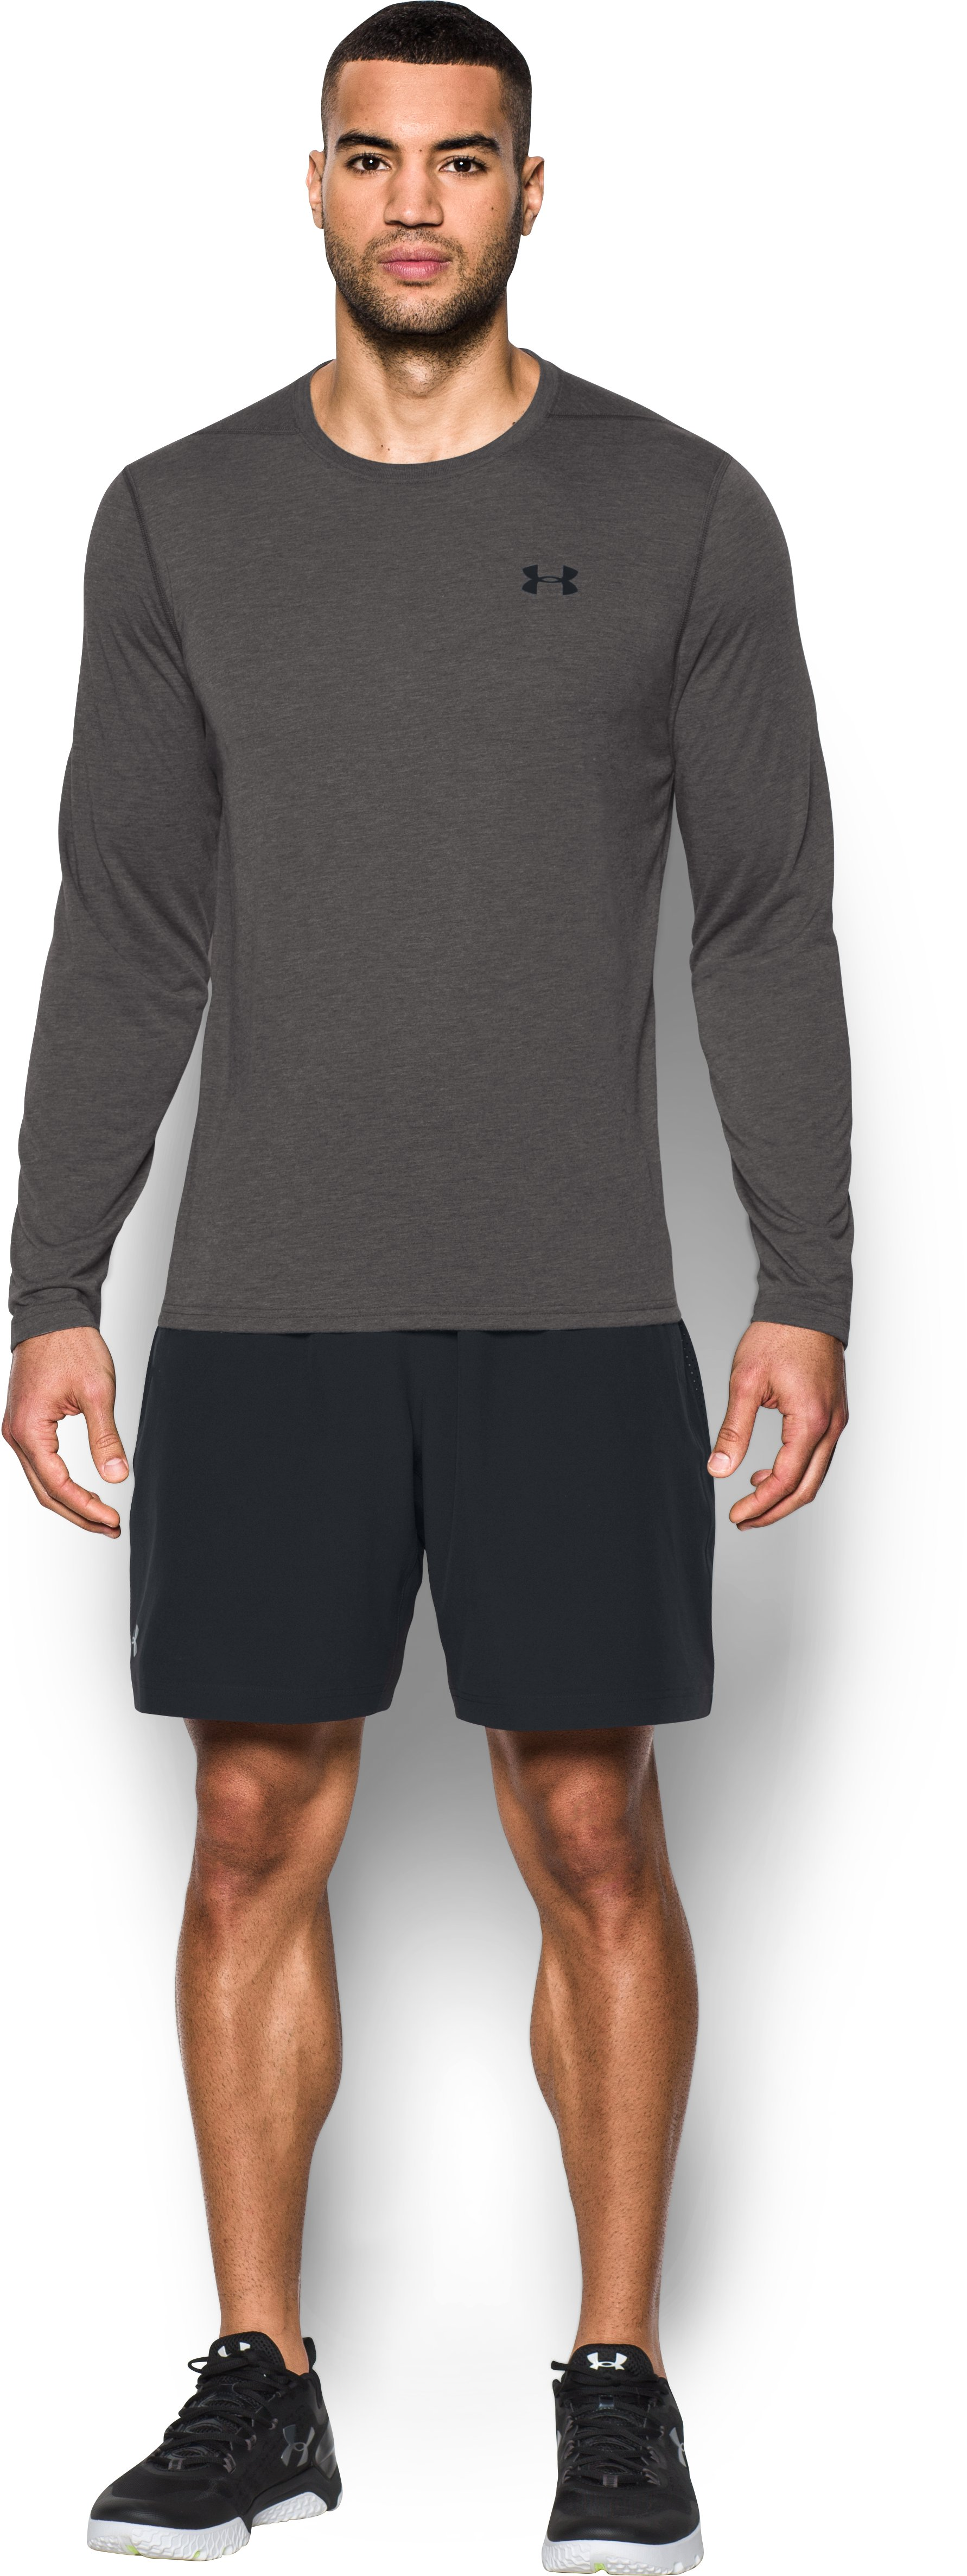 Men's UA Threadborne Siro Long Sleeve T-Shirt, Carbon Heather